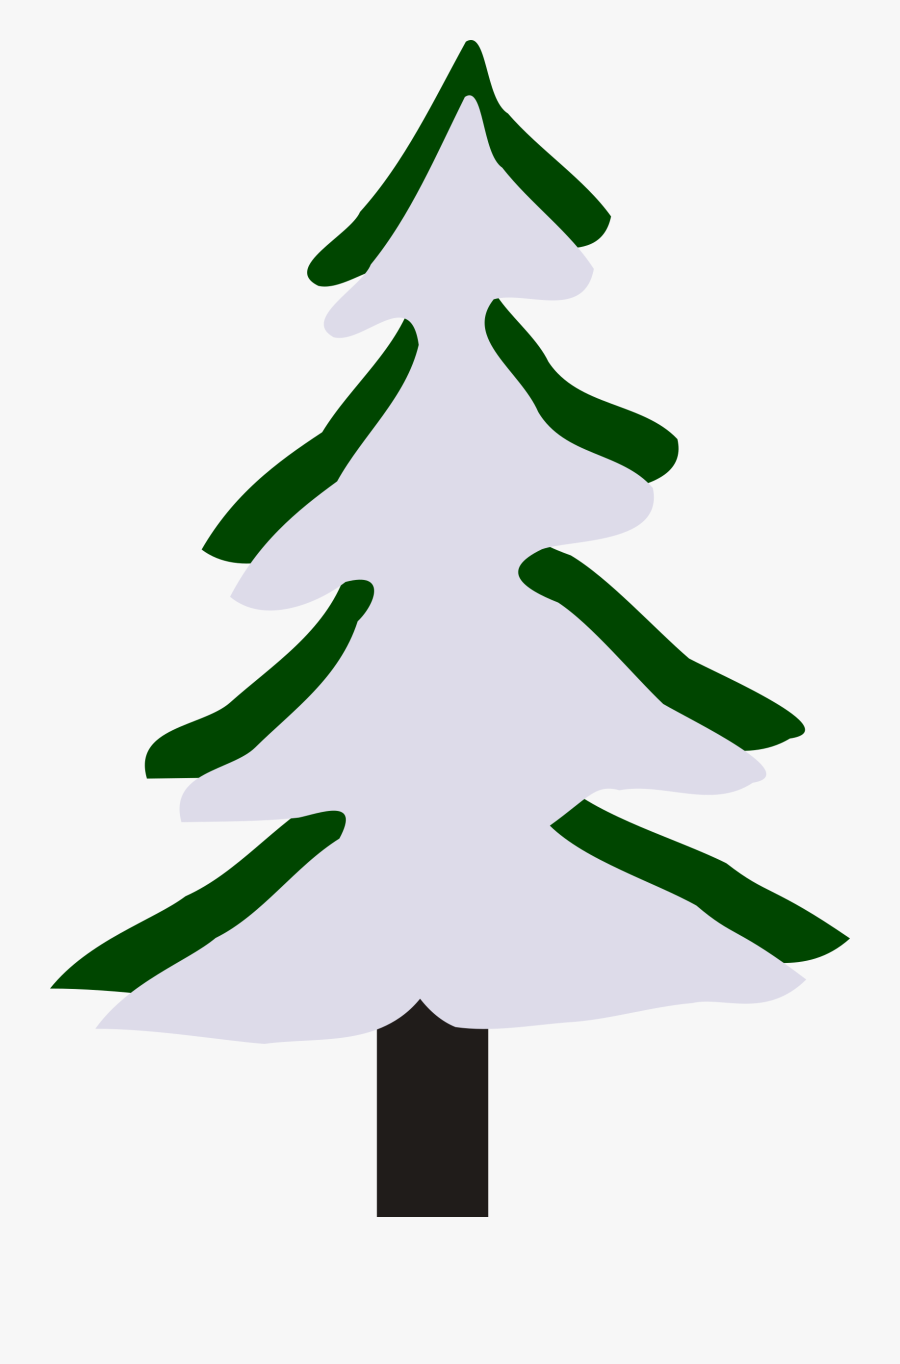 Pine Tree In Winter - Tree Winter Cartoon Png, Transparent Clipart